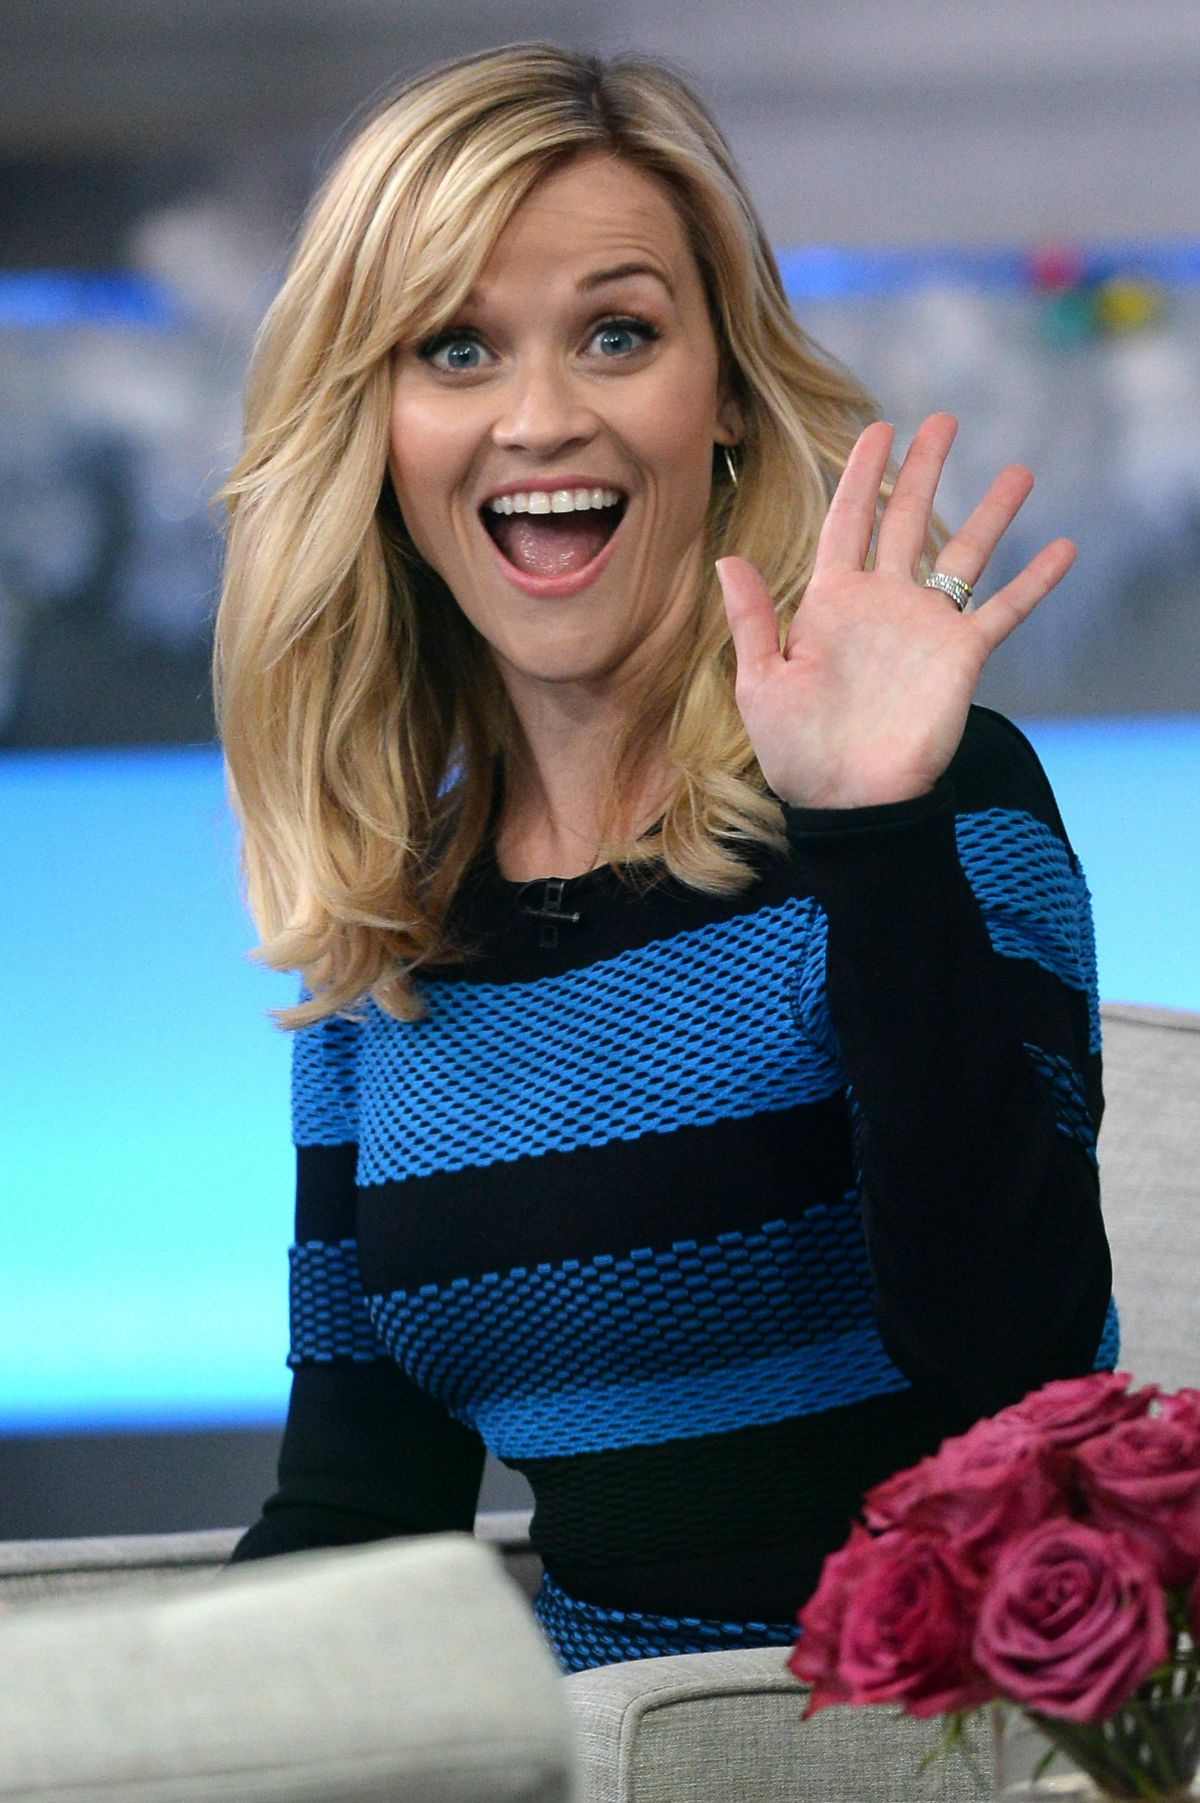 Reese Witherspoon Archives - Page 13 of 29 - HawtCelebs - HawtCelebs